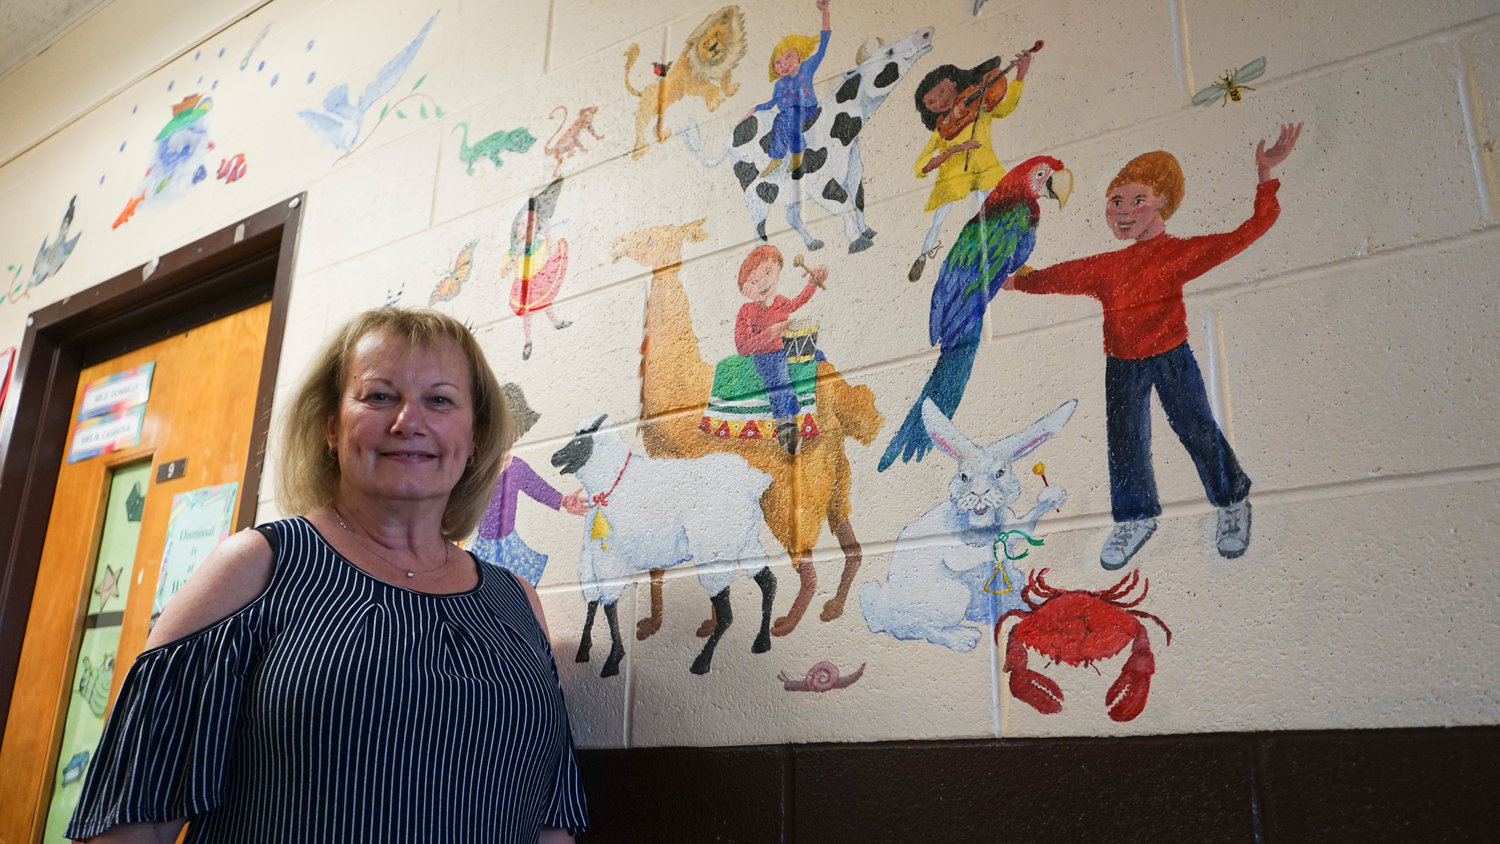 Diane Panzarino, who for the past 23 years has served as director of the Grace Methodist Nursery School, will be stepping down this July.